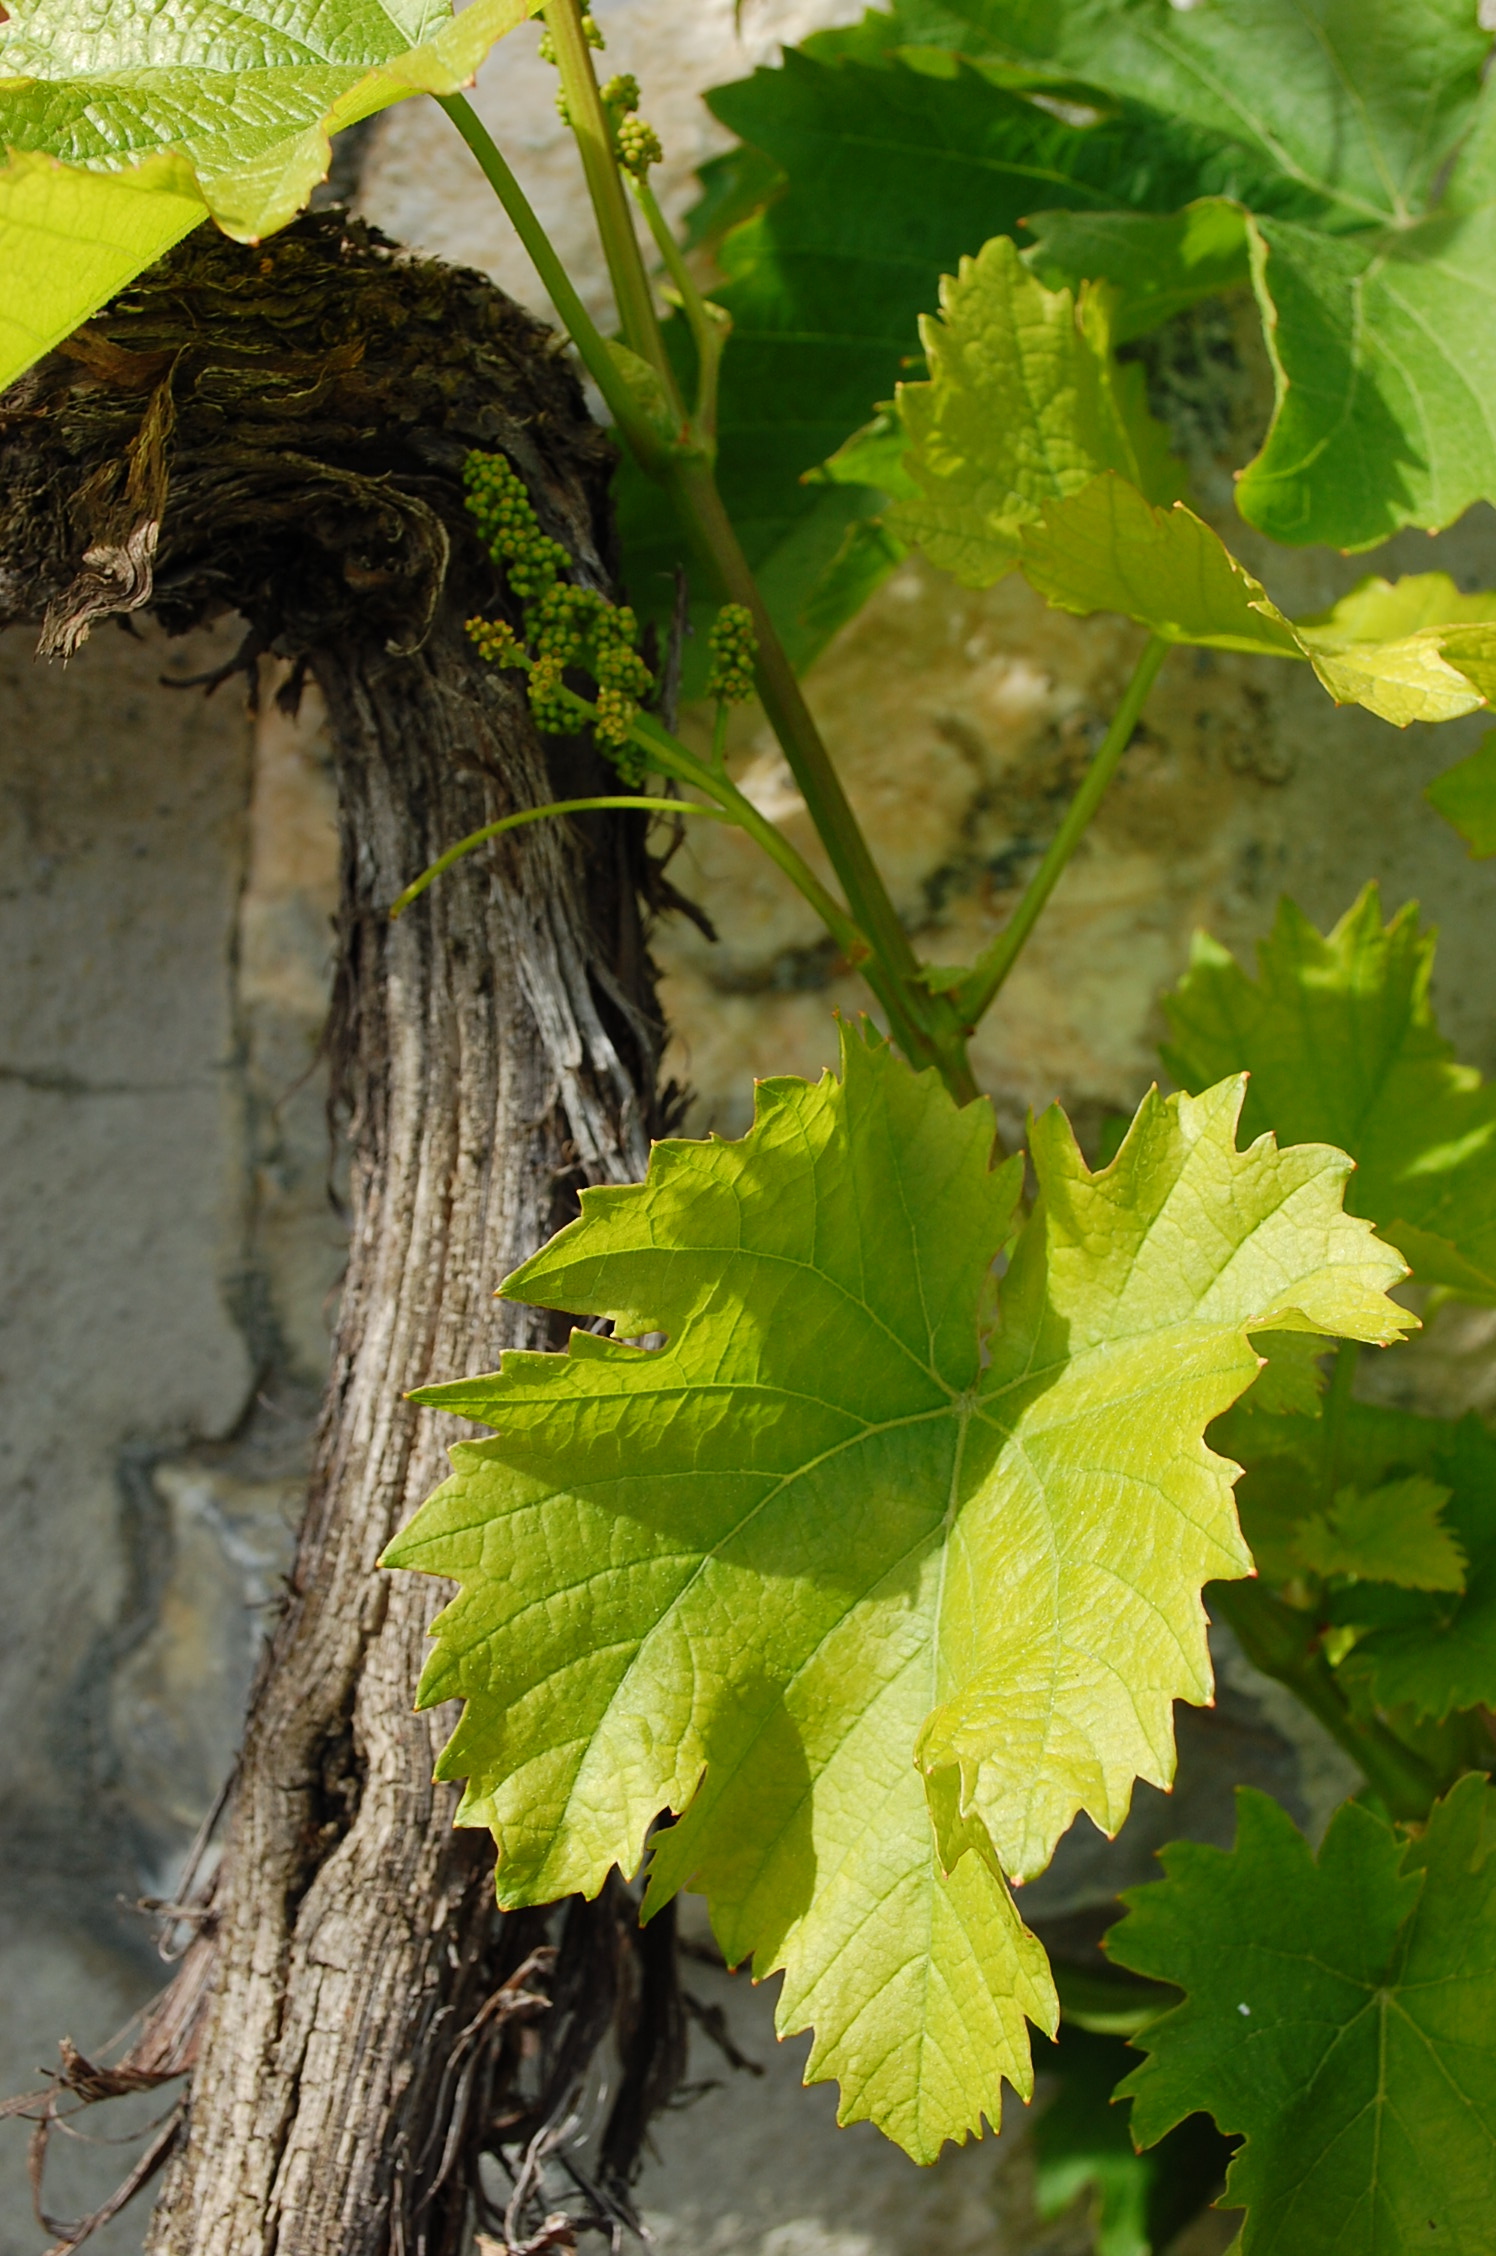 Petite grappe feuille